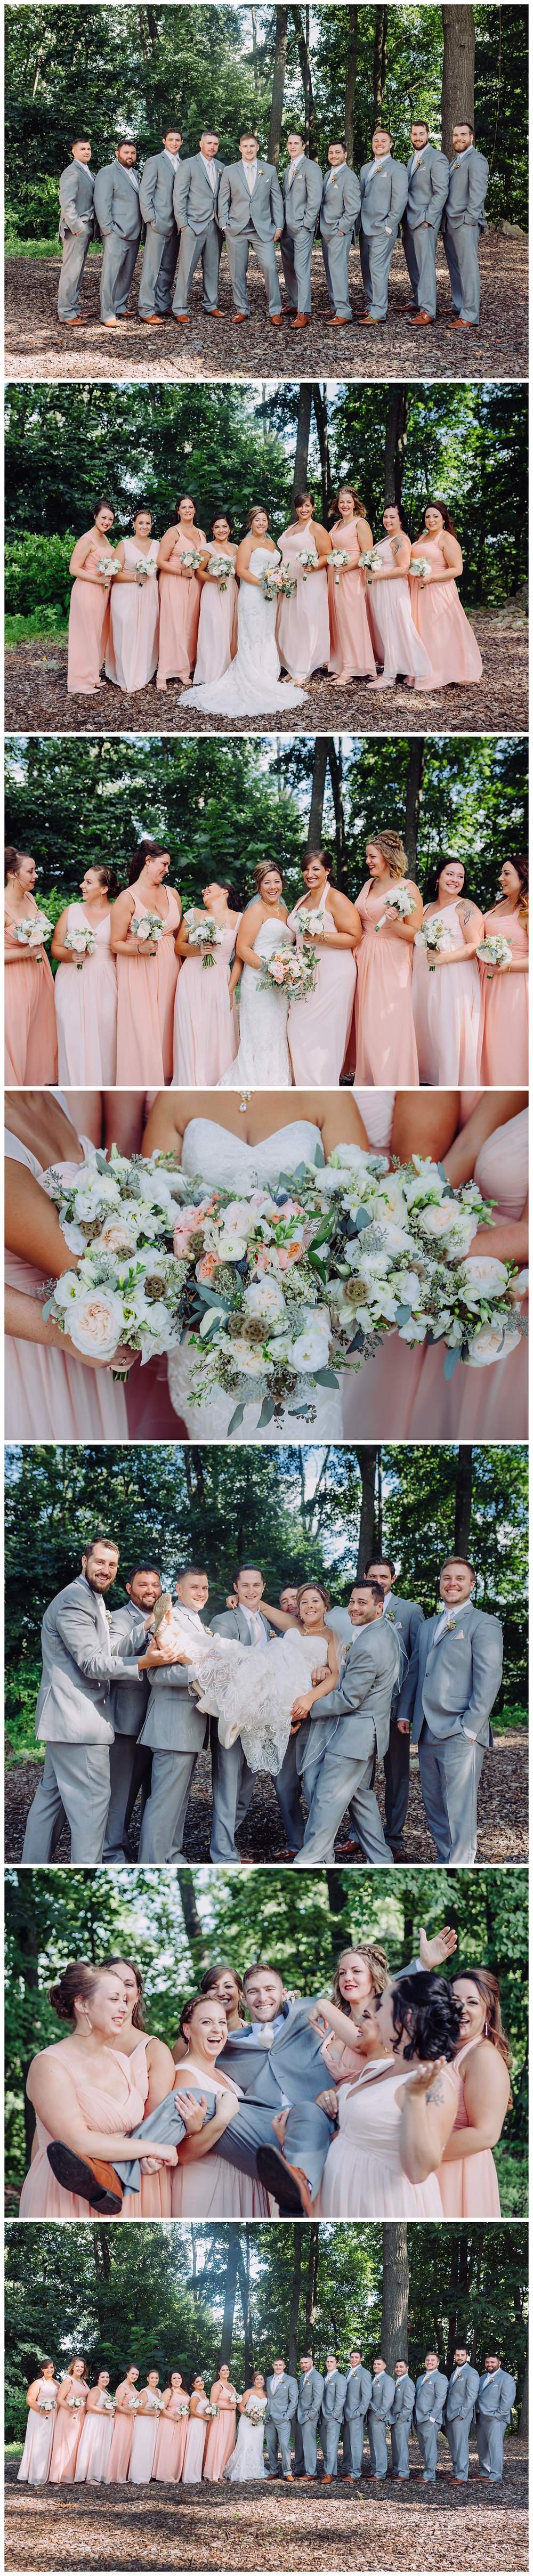 Peaches and Grey Details - Bridal Party Portraits - Katherine Elizabeth Photography - Annapolis Wedding Photographer